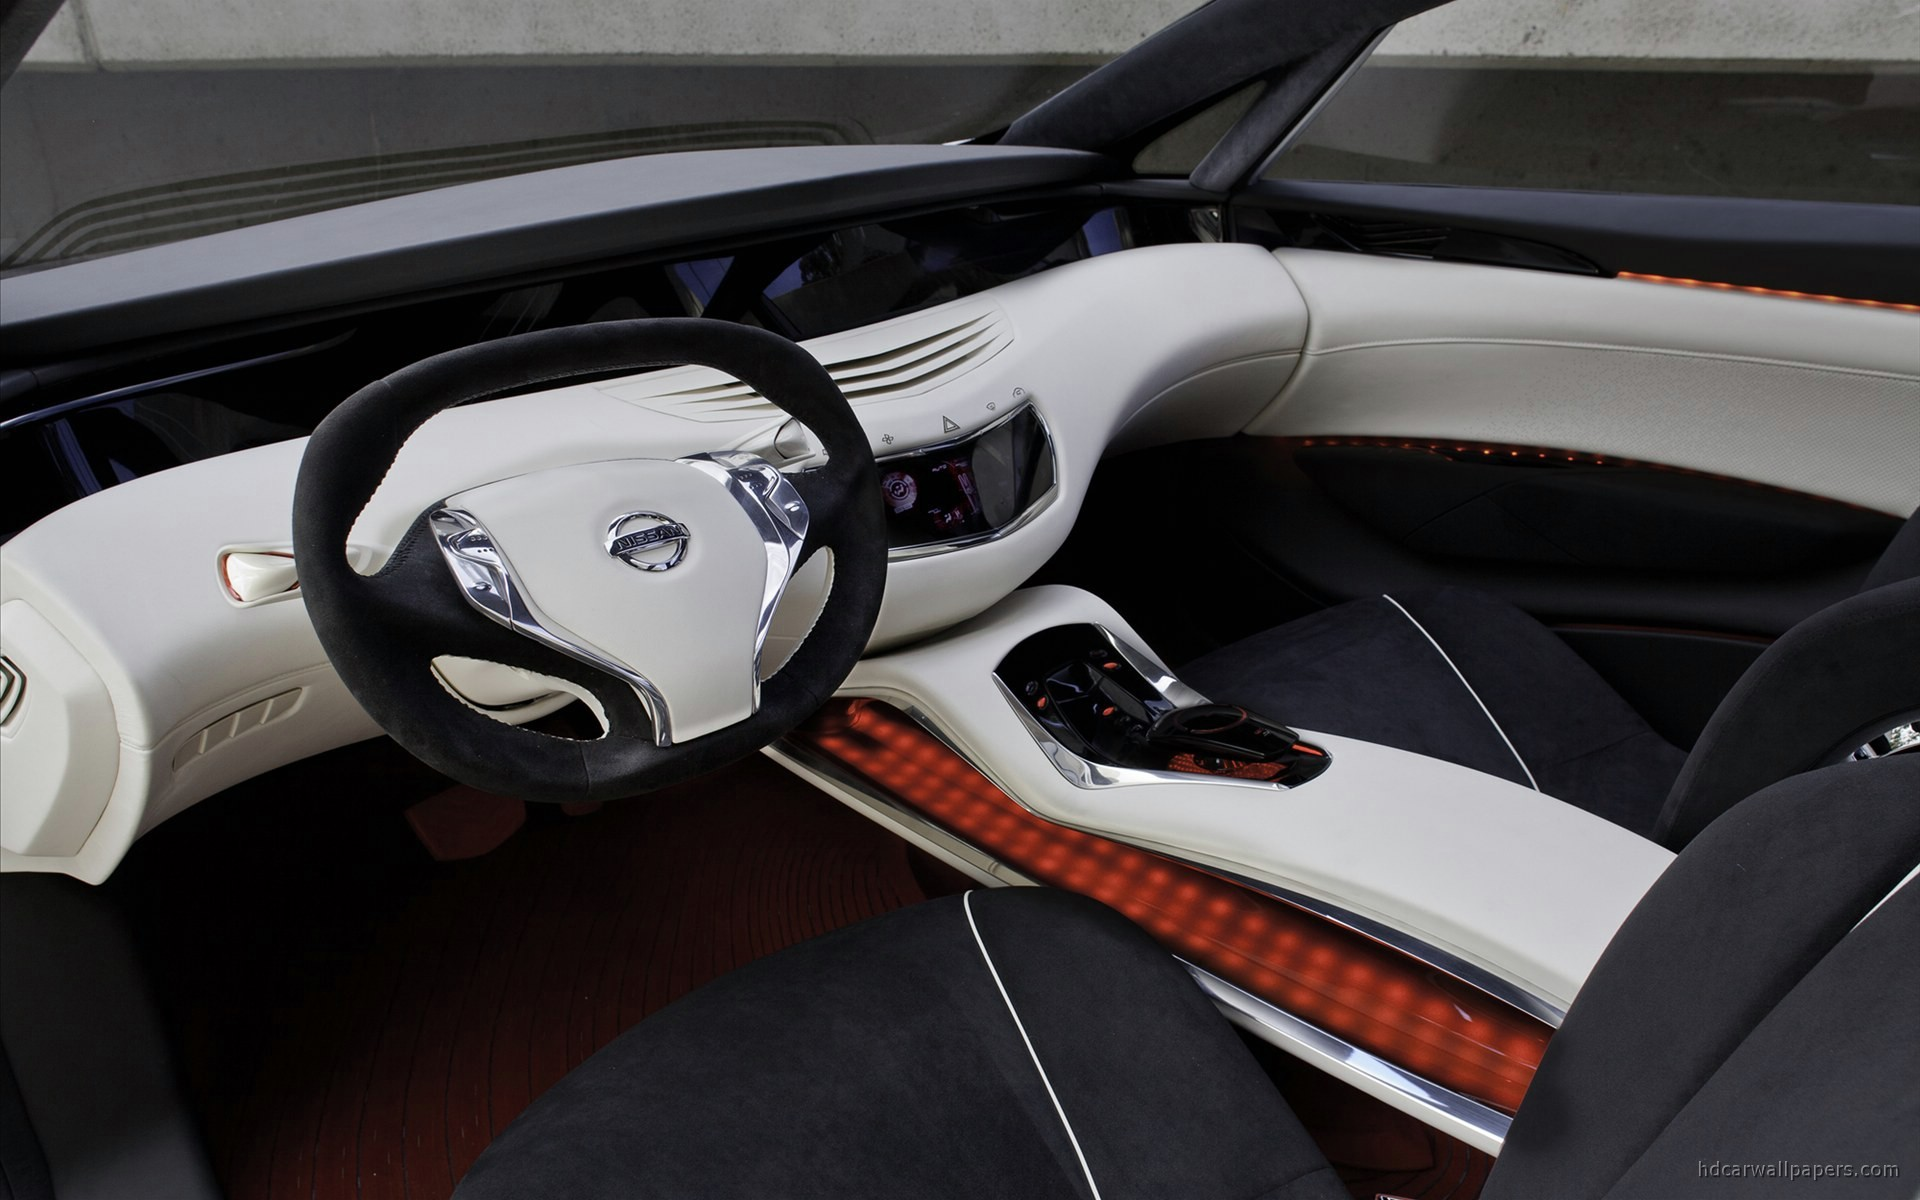 2010 Nissan Ellure Concept Interior Wallpaper | HD Car ...